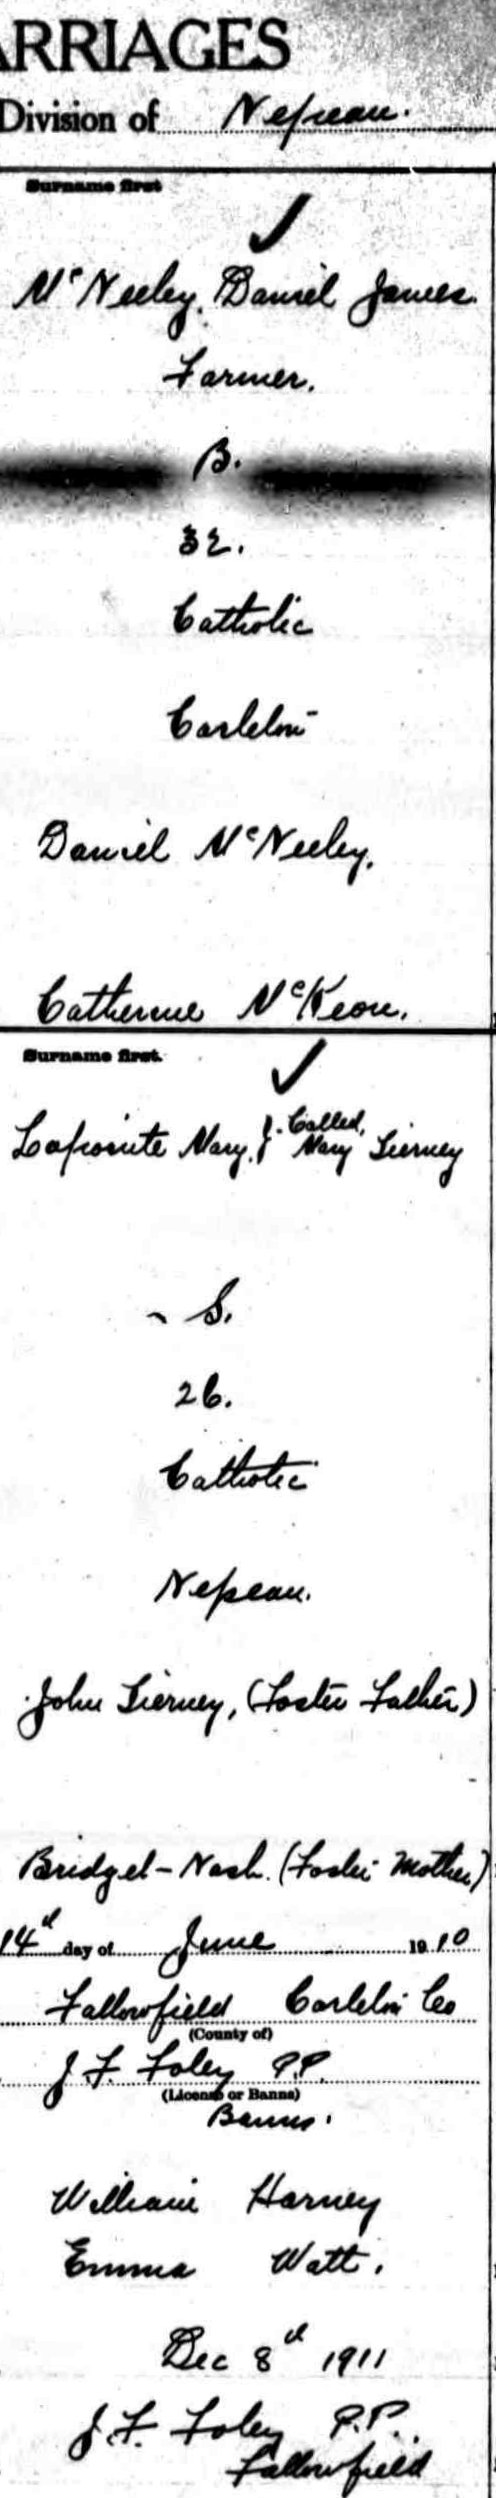 Marriage of Daniel McNeely and May Lapointe